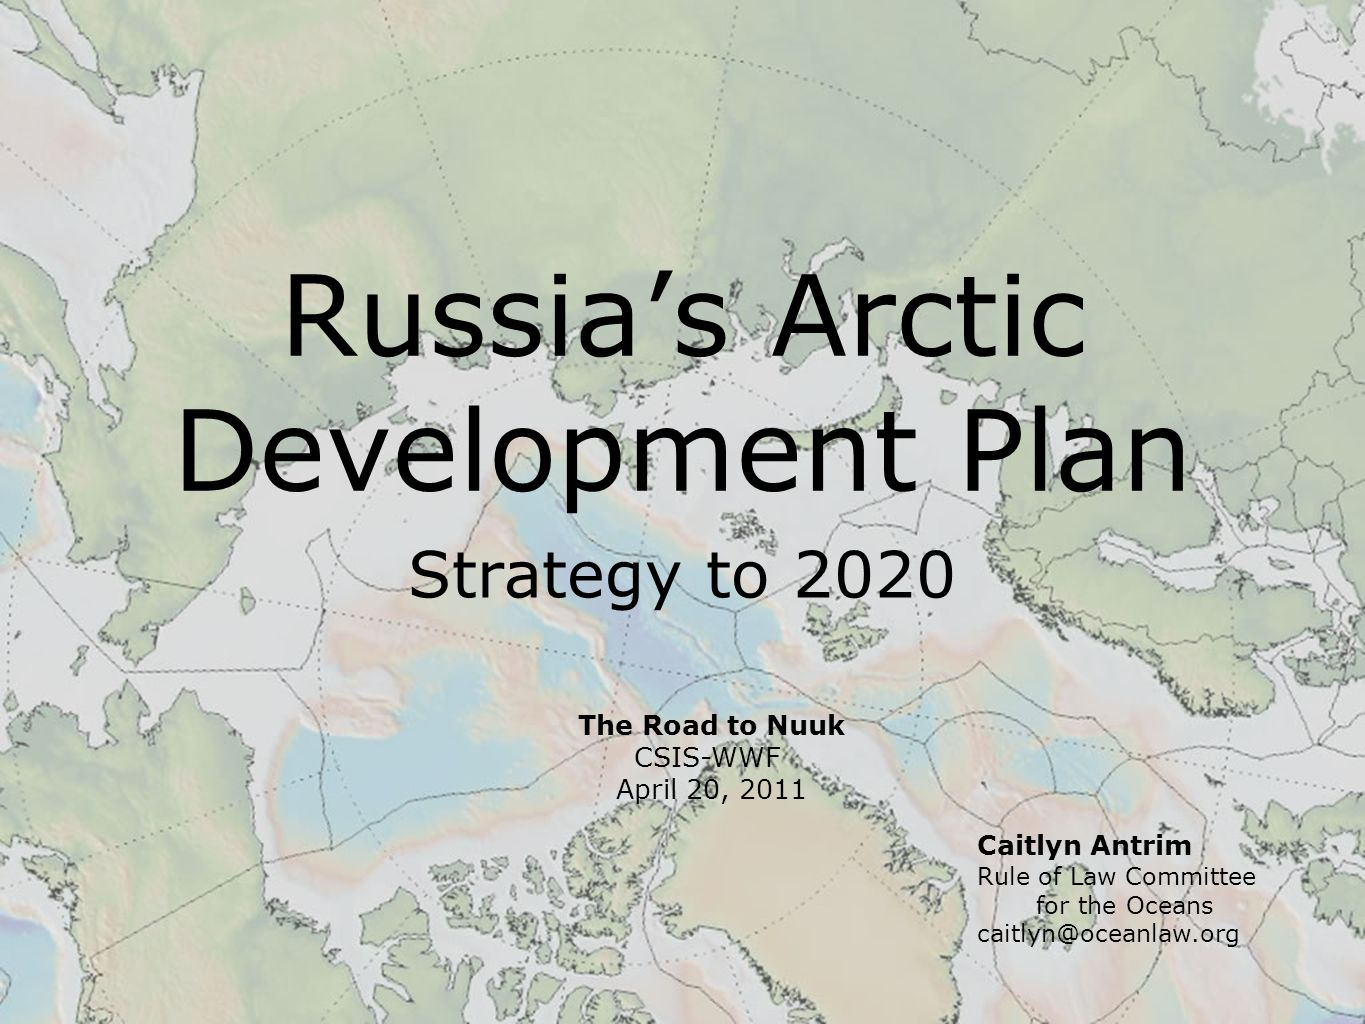 Russia's Arctic Development Plan Strategy to 2020 Caitlyn Antrim Rule of Law Committee for the Oceans caitlyn@oceanlaw.org The Road to Nuuk CSIS-WWF April 20, 2011